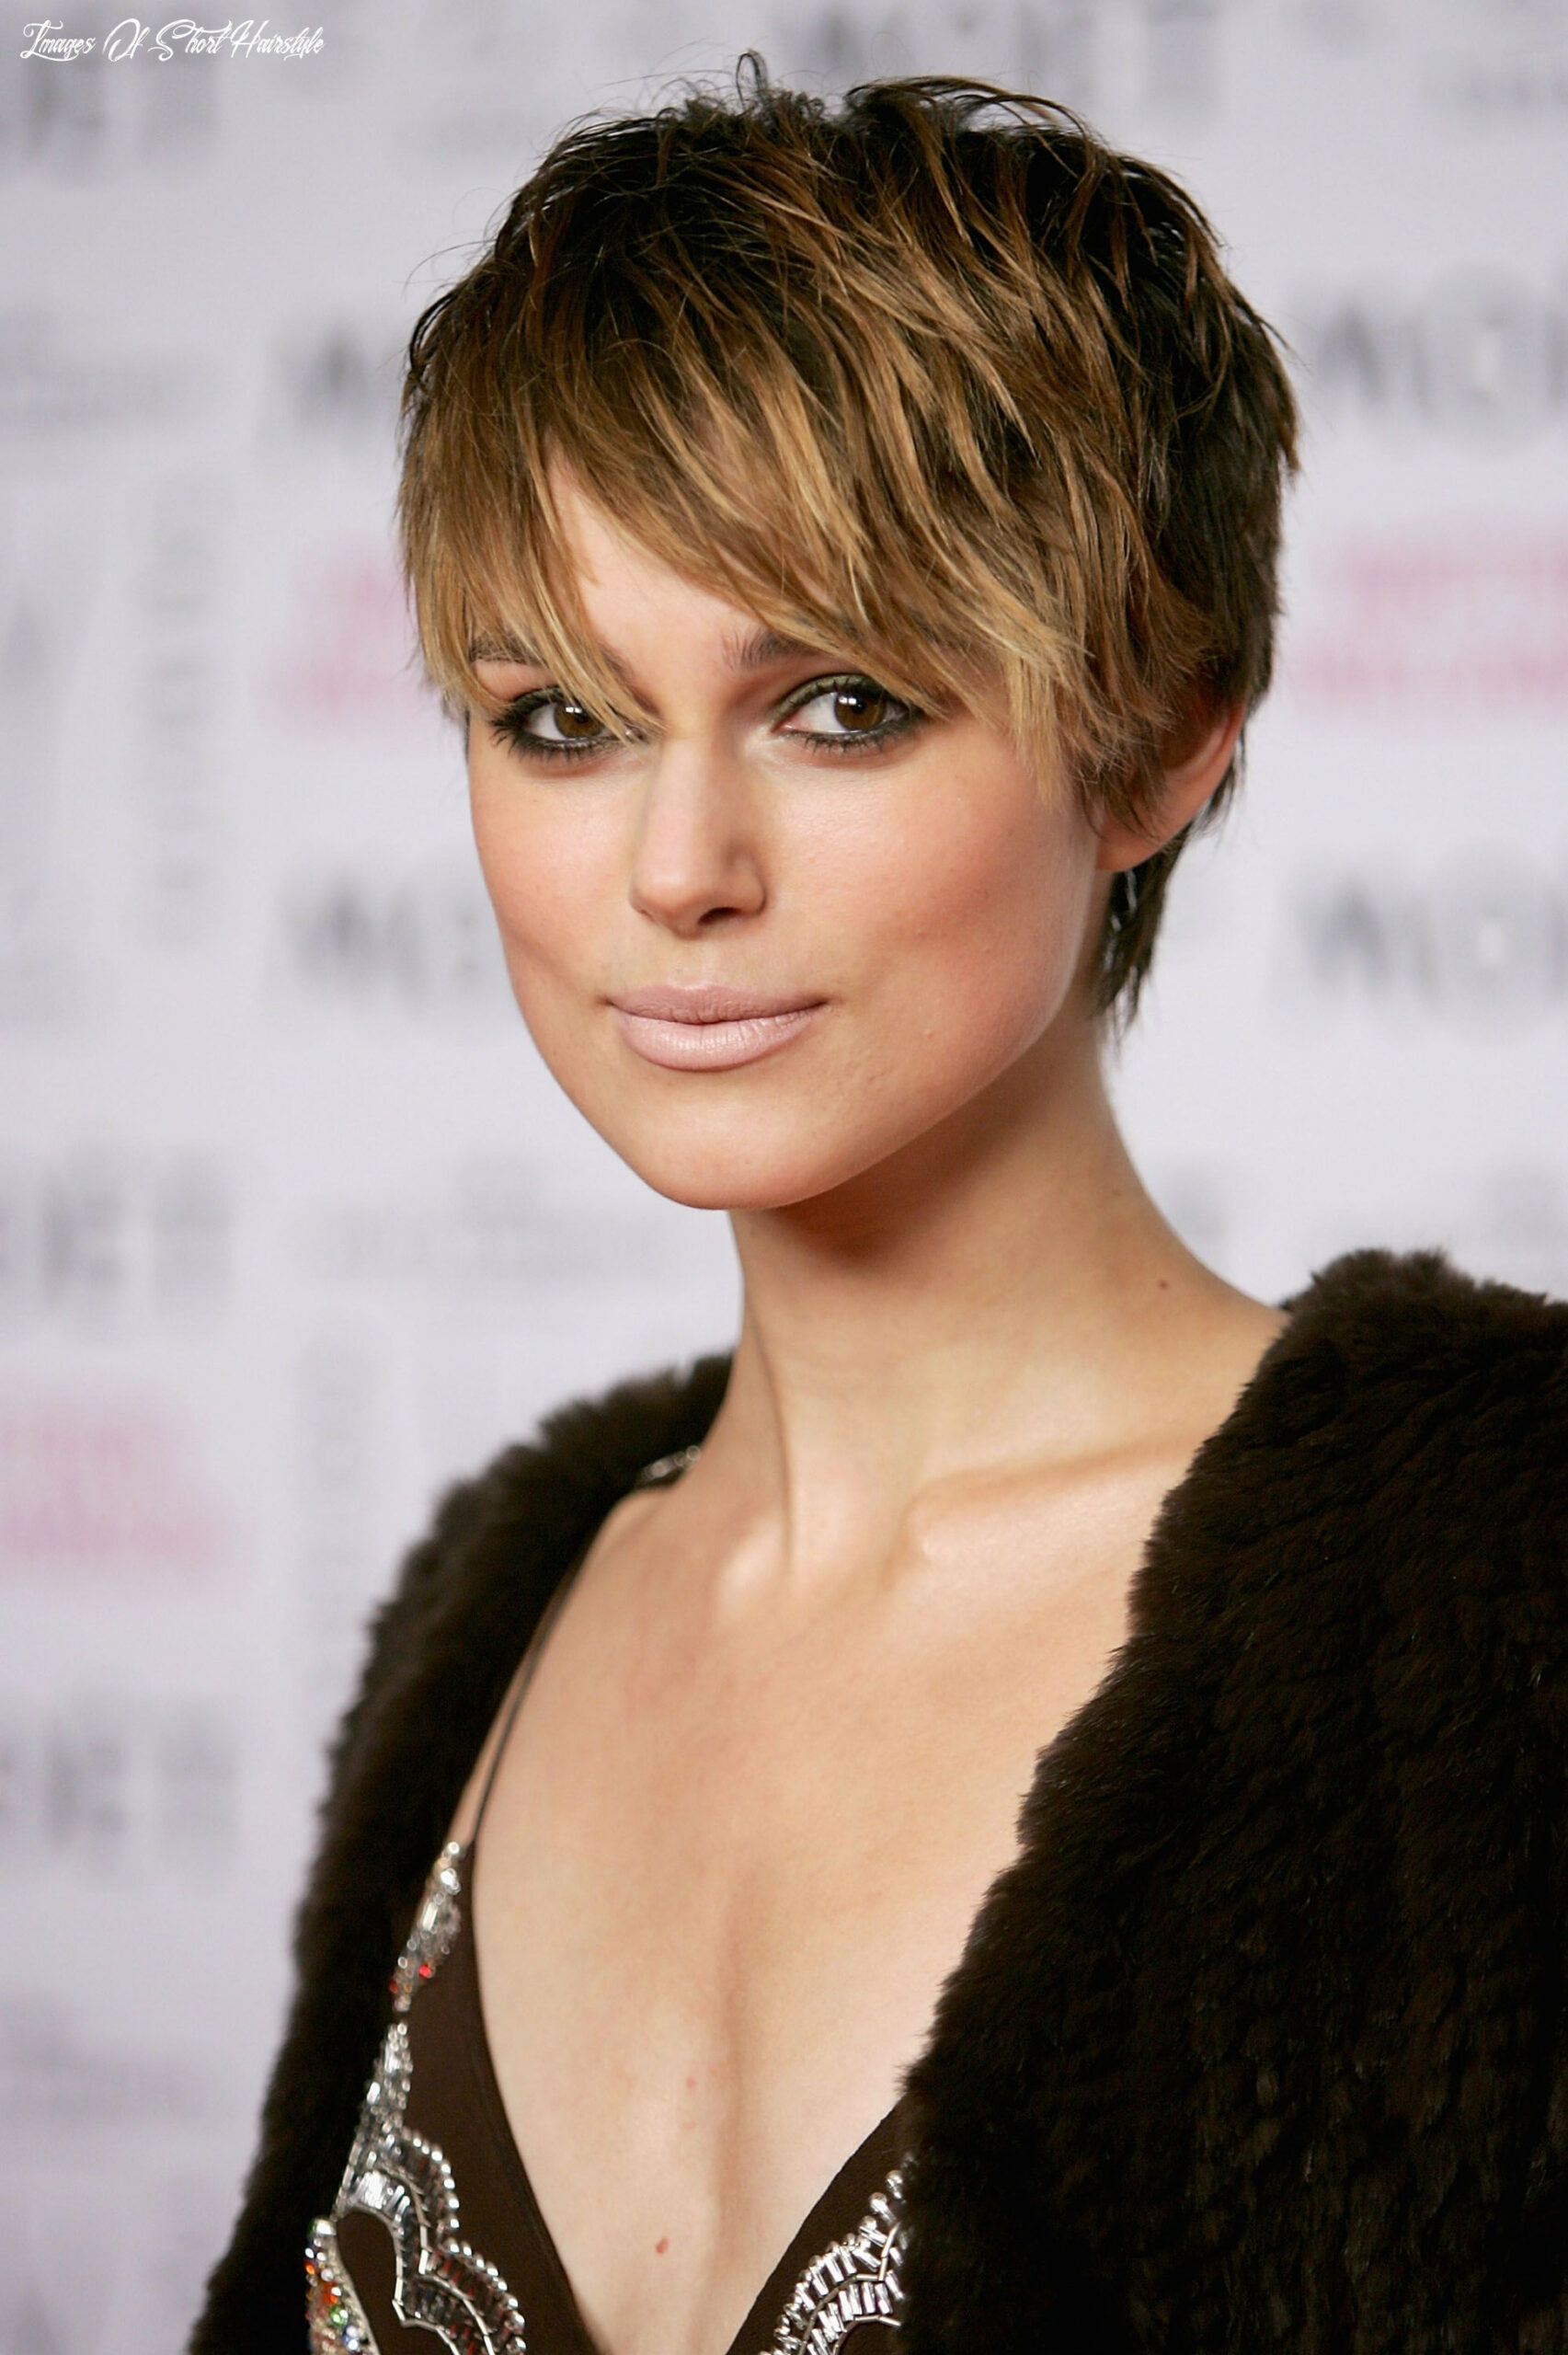 9 best short hairstyles, haircuts & short hair ideas for 9 images of short hairstyle